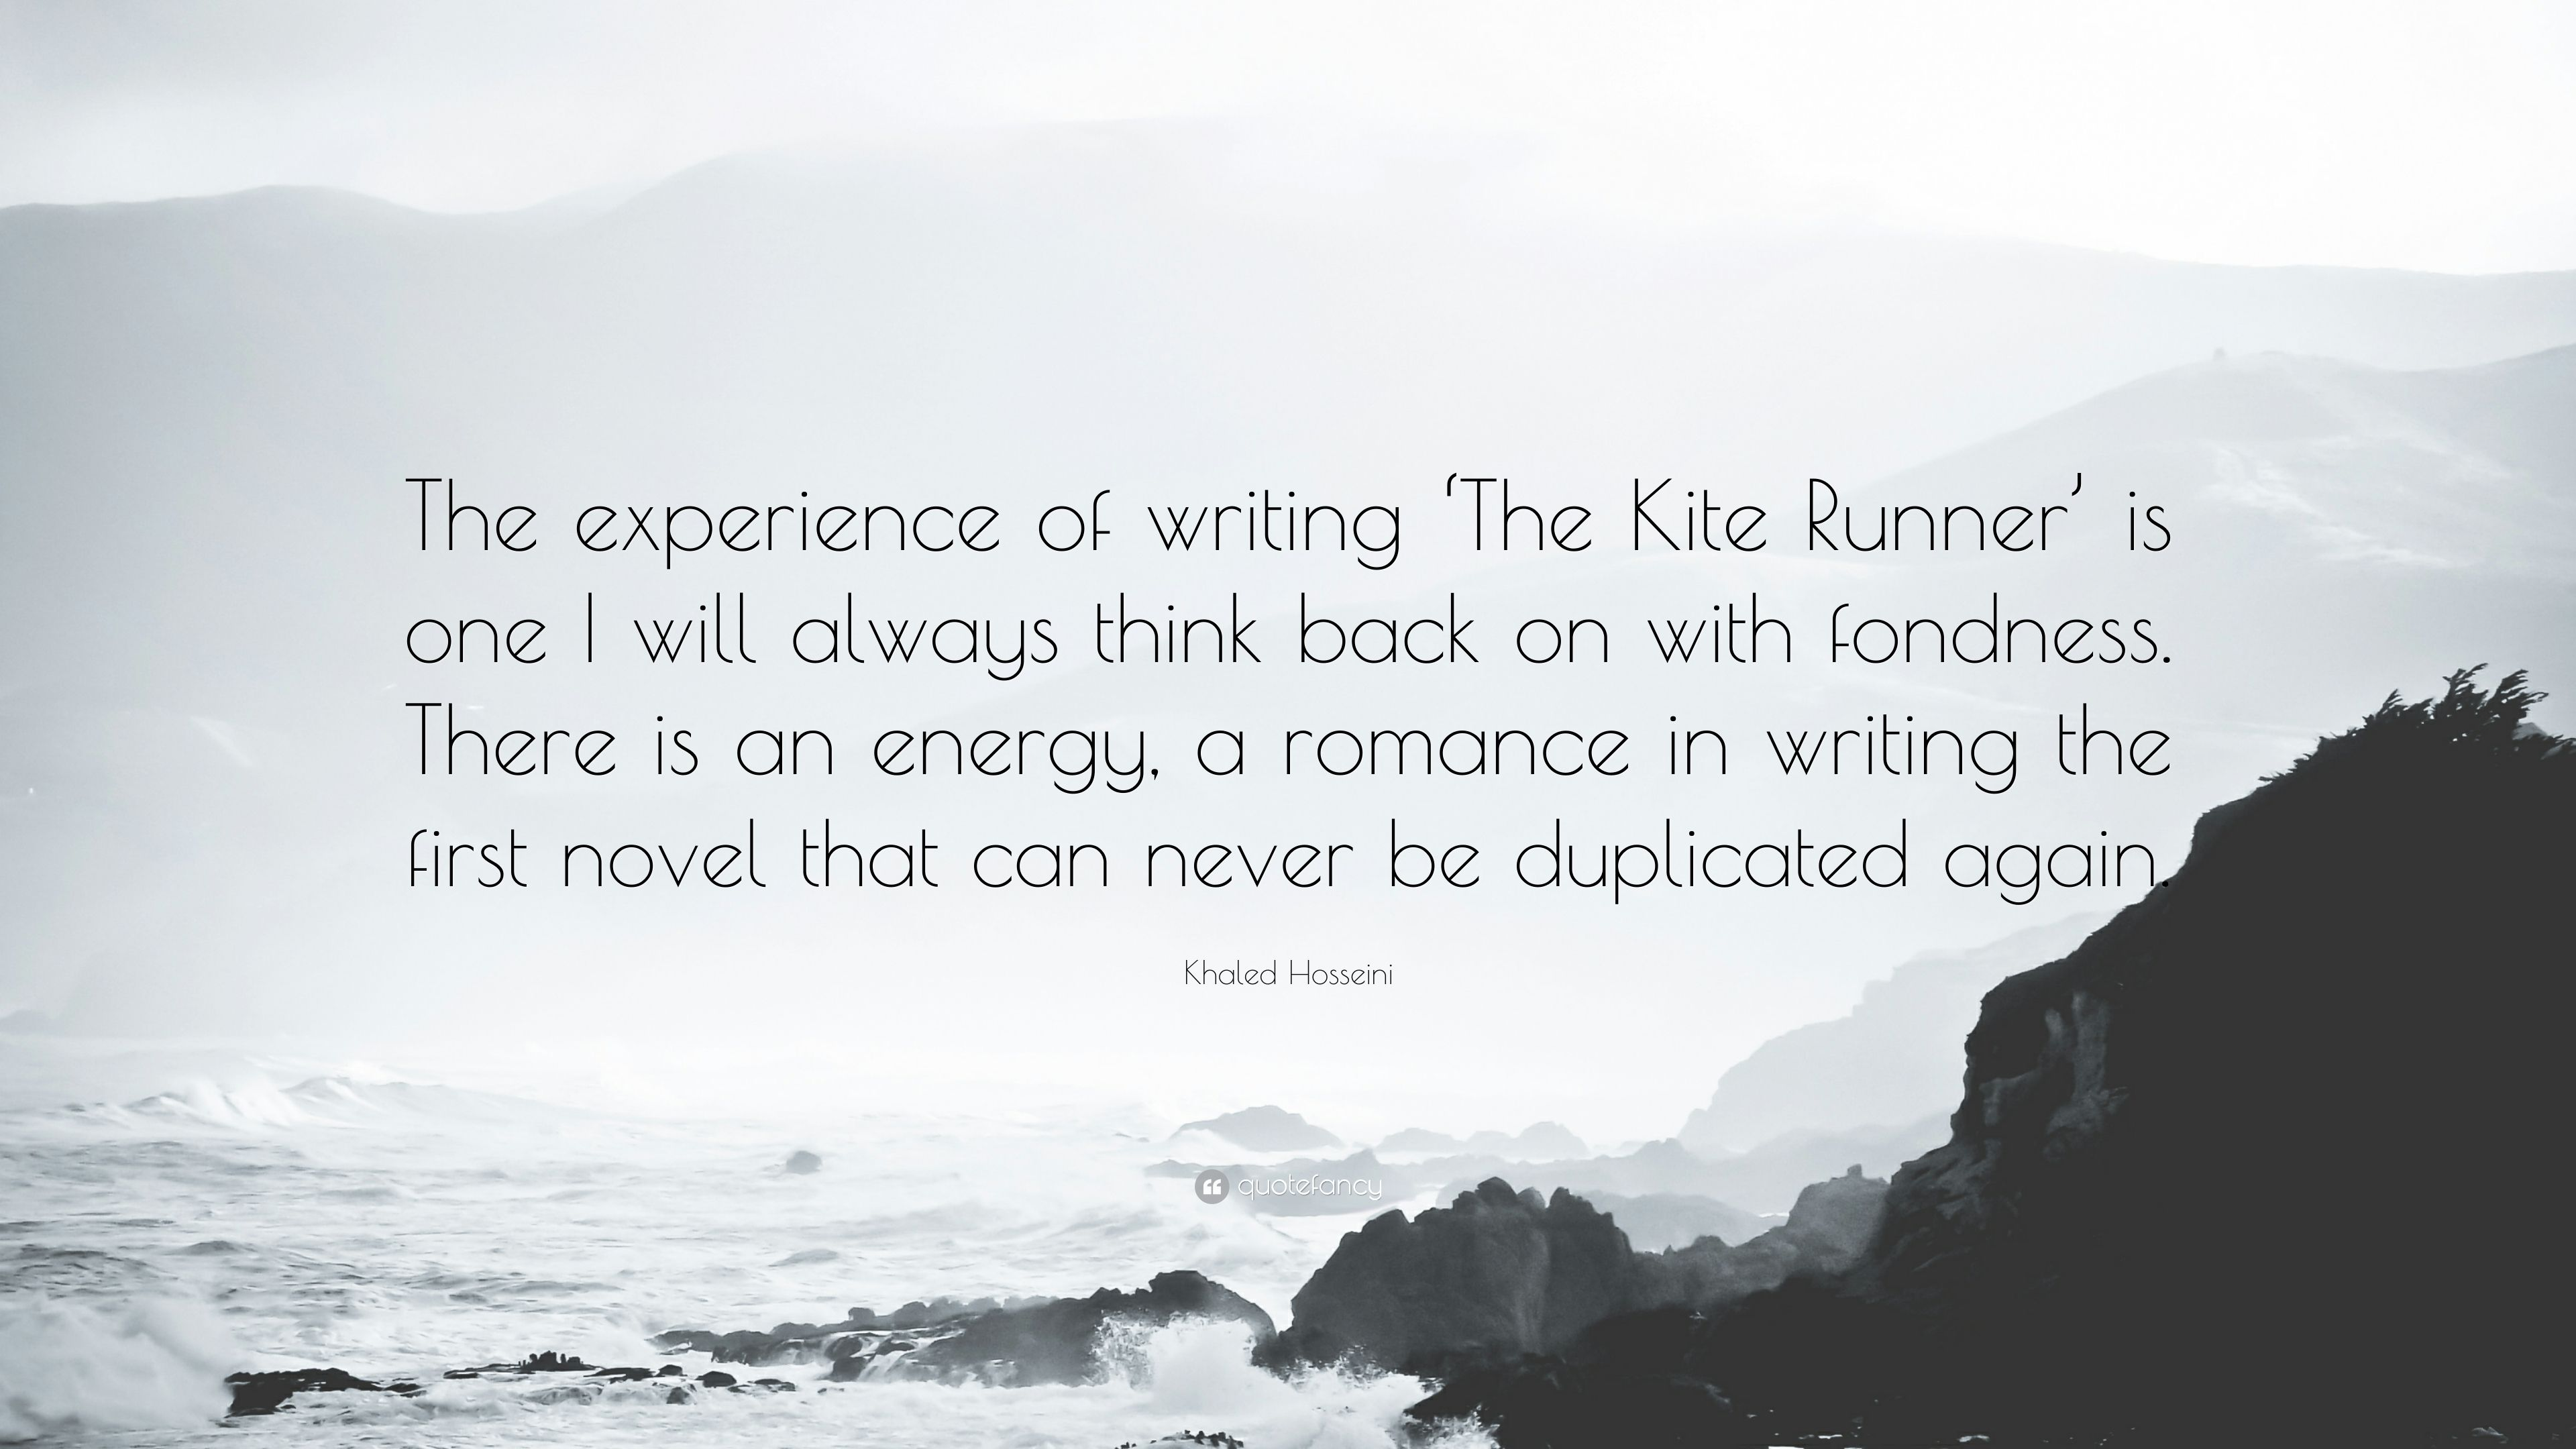 Quotes         The Kite Runner   Wattpad Author Khaled Hosseini THE KITE RUNNER One of the best quotes from one of  the best